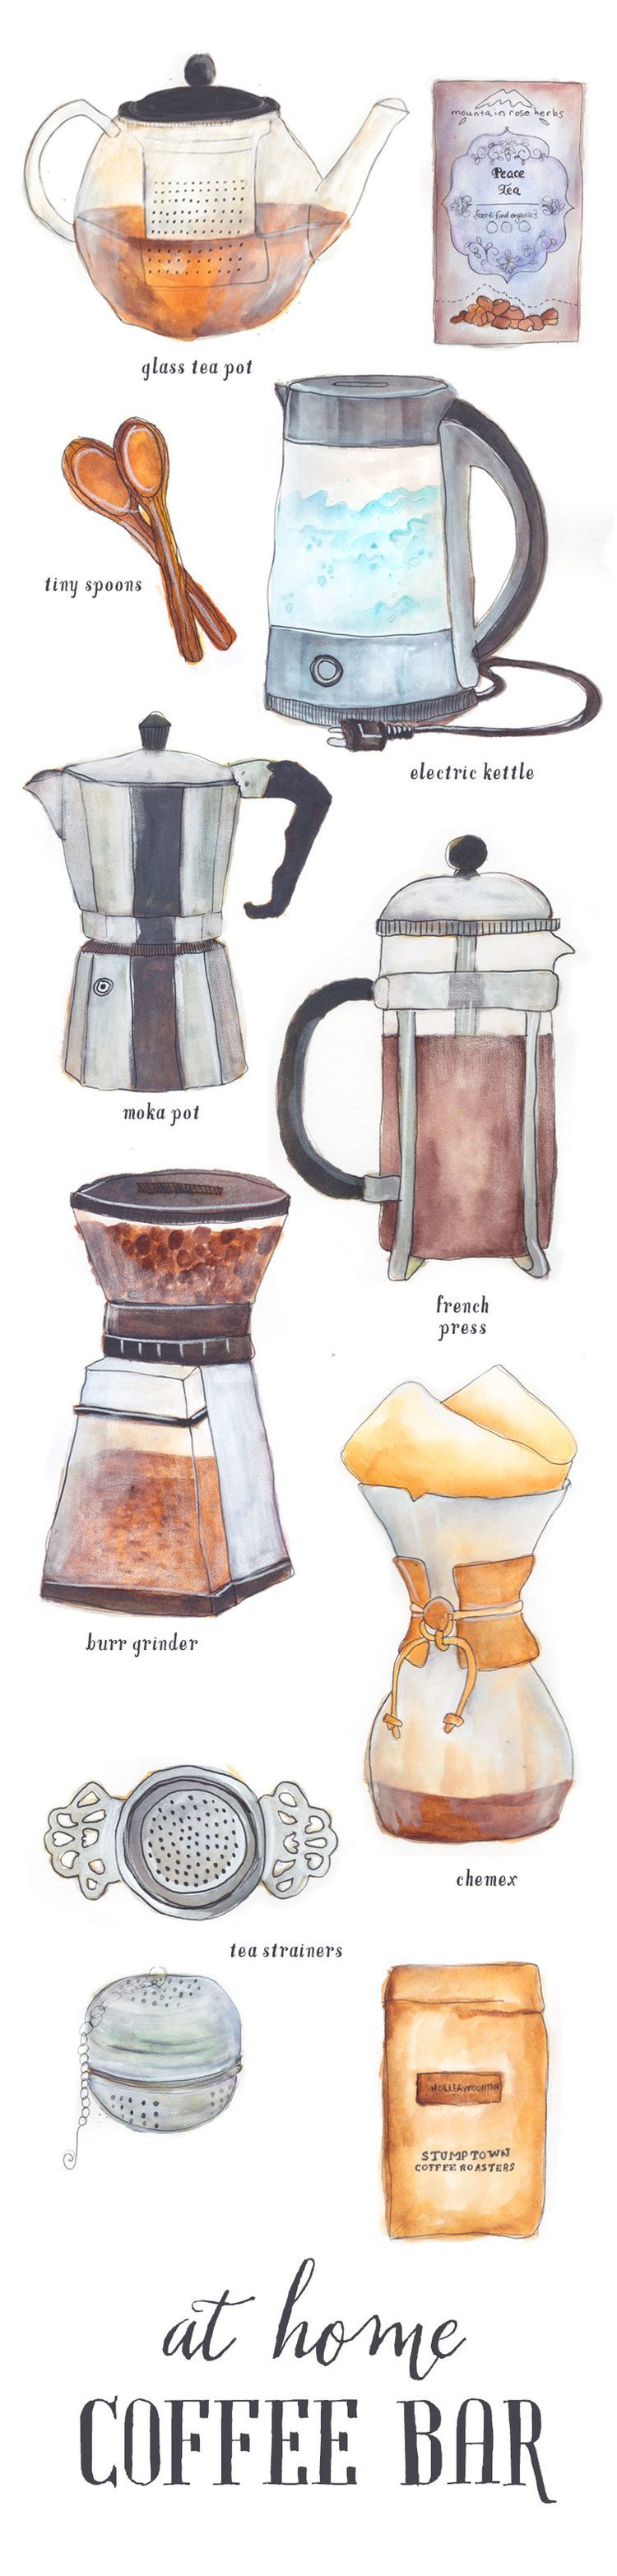 essential items for your at home coffee bar